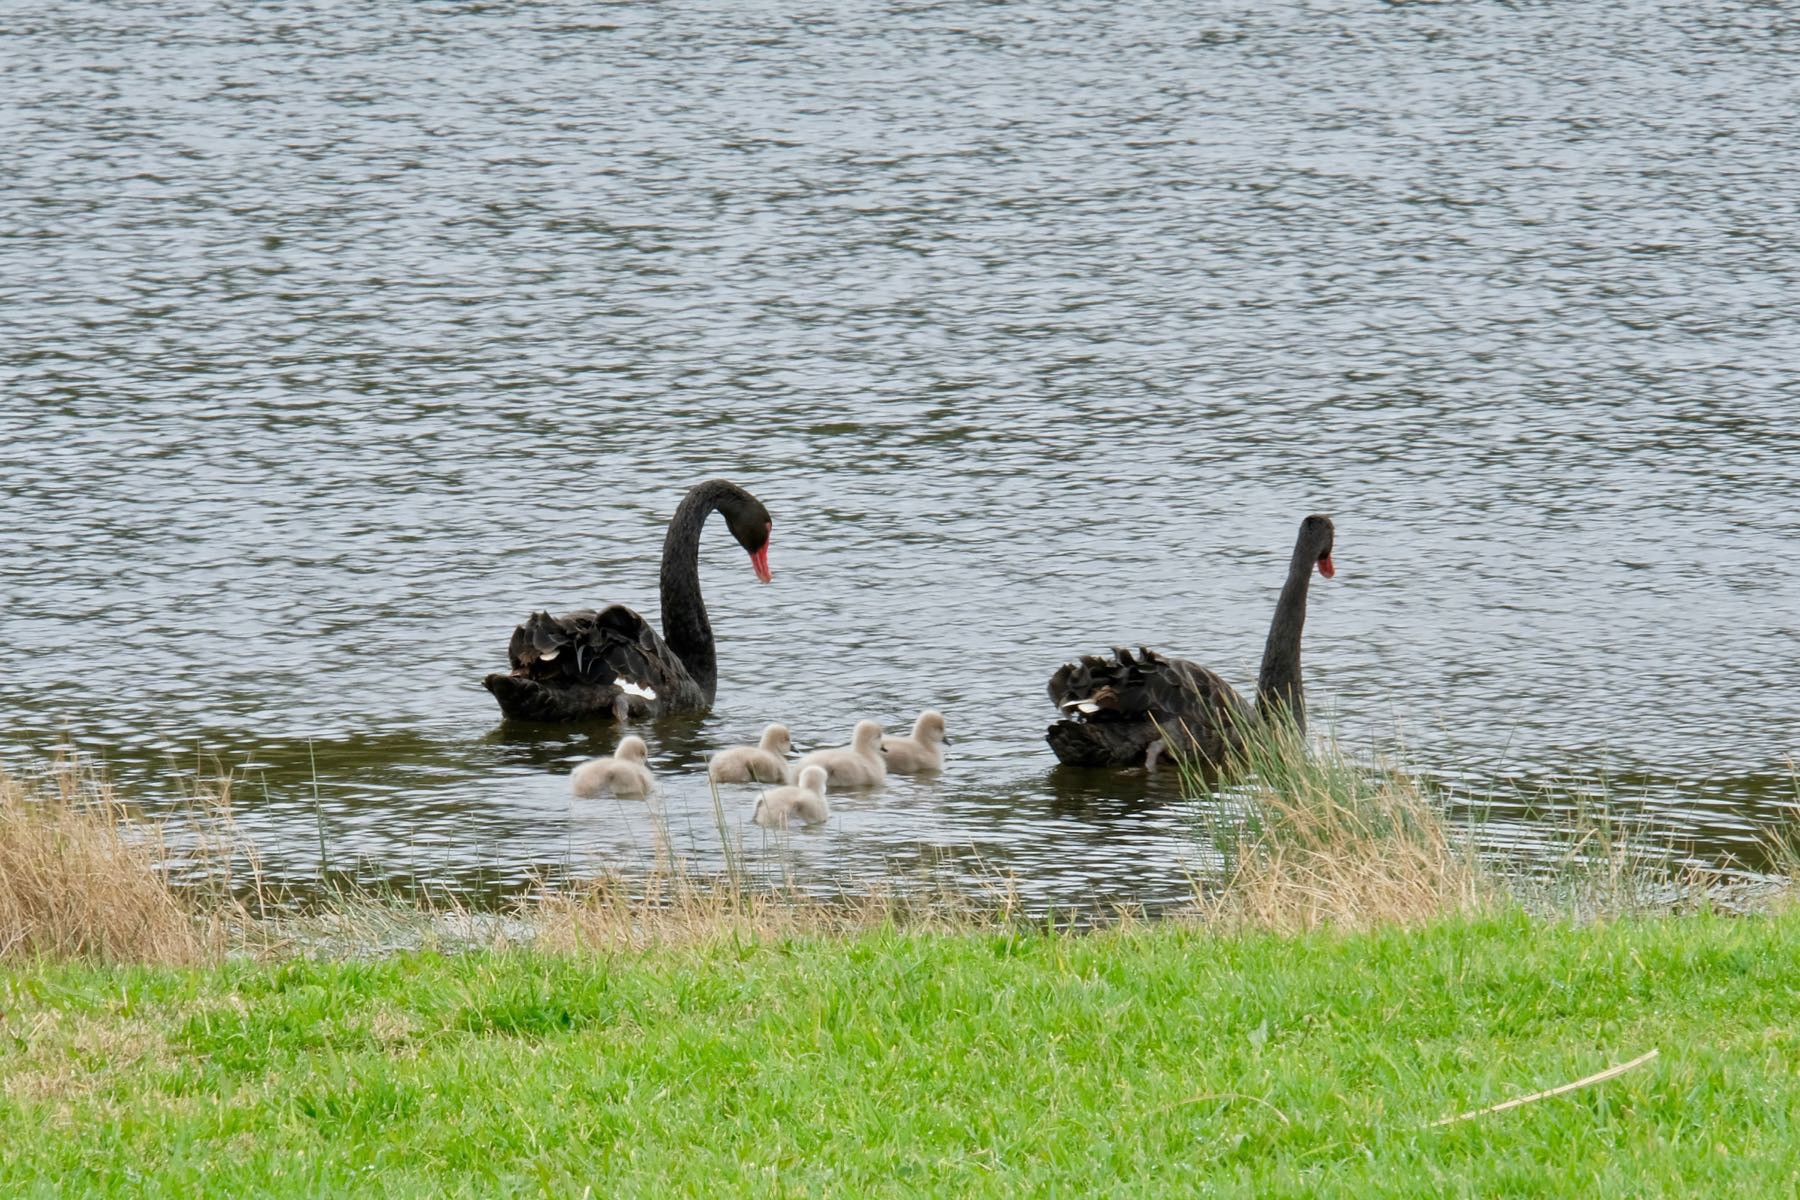 Adult swans on the lake with babies close behind.